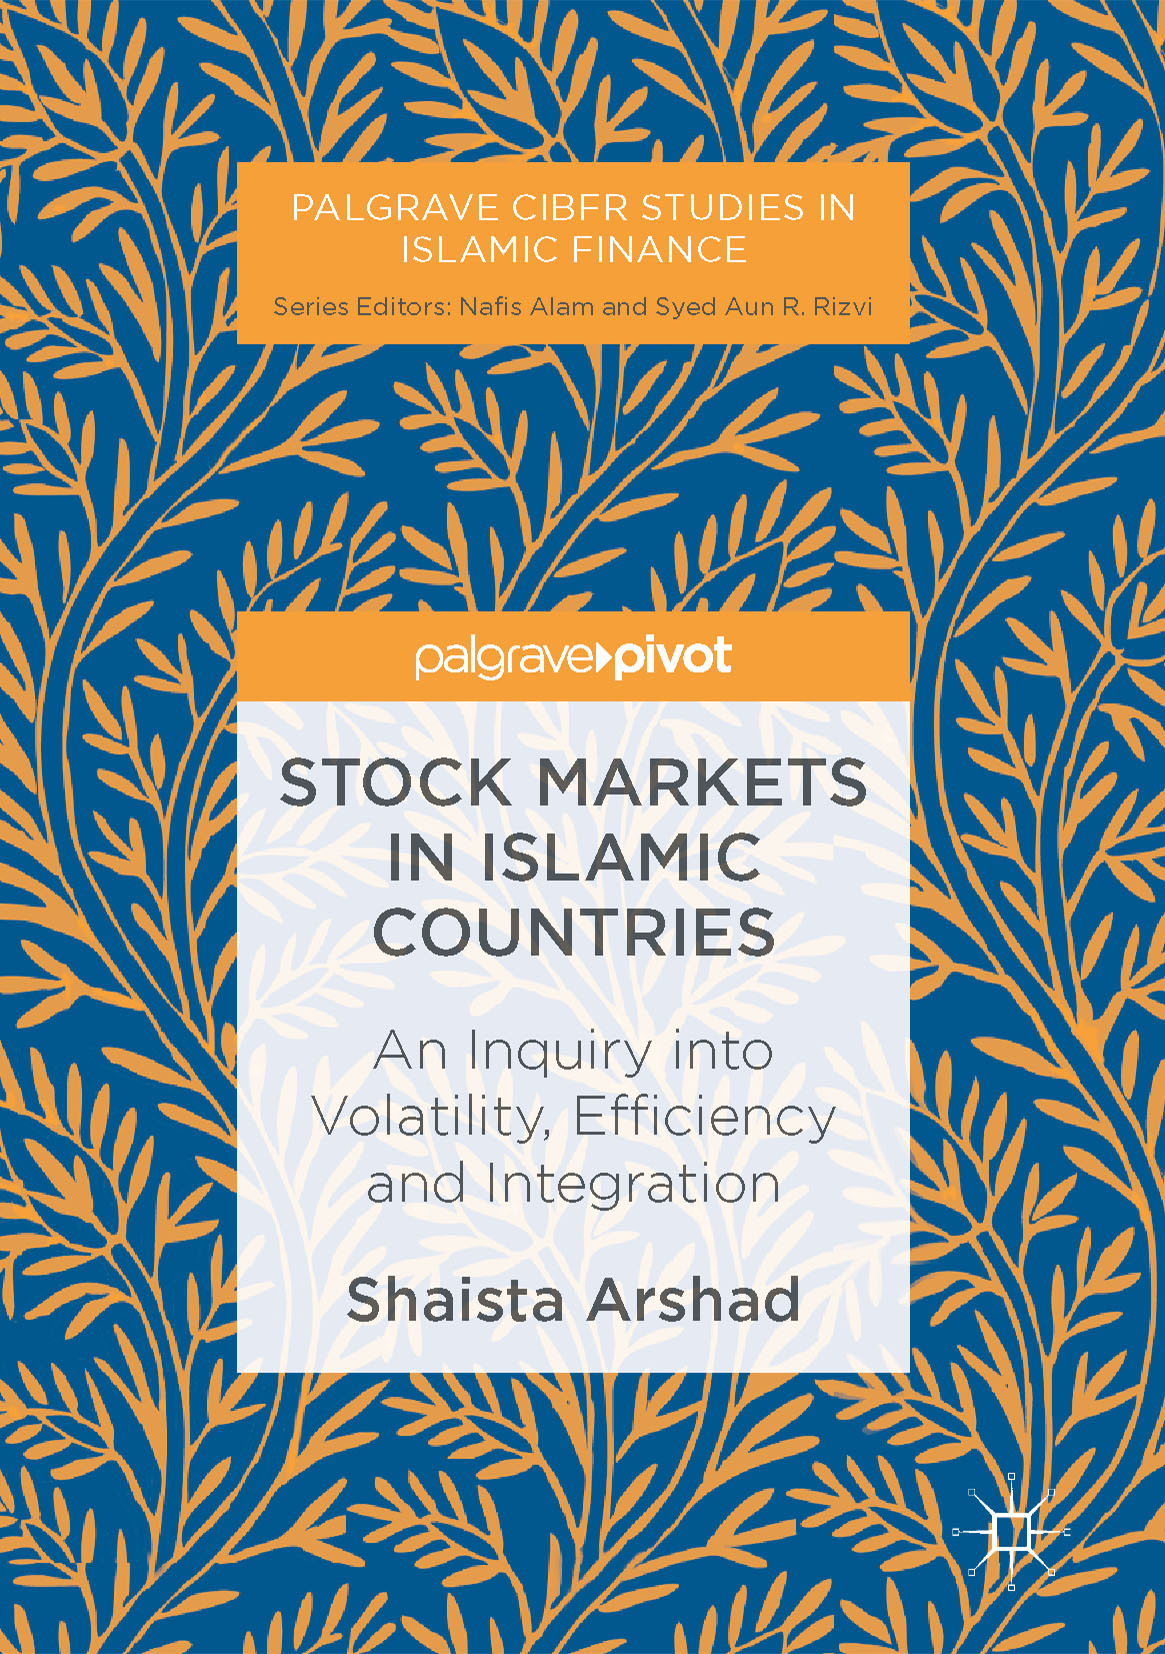 Arshad, Shaista - Stock Markets in Islamic Countries, ebook